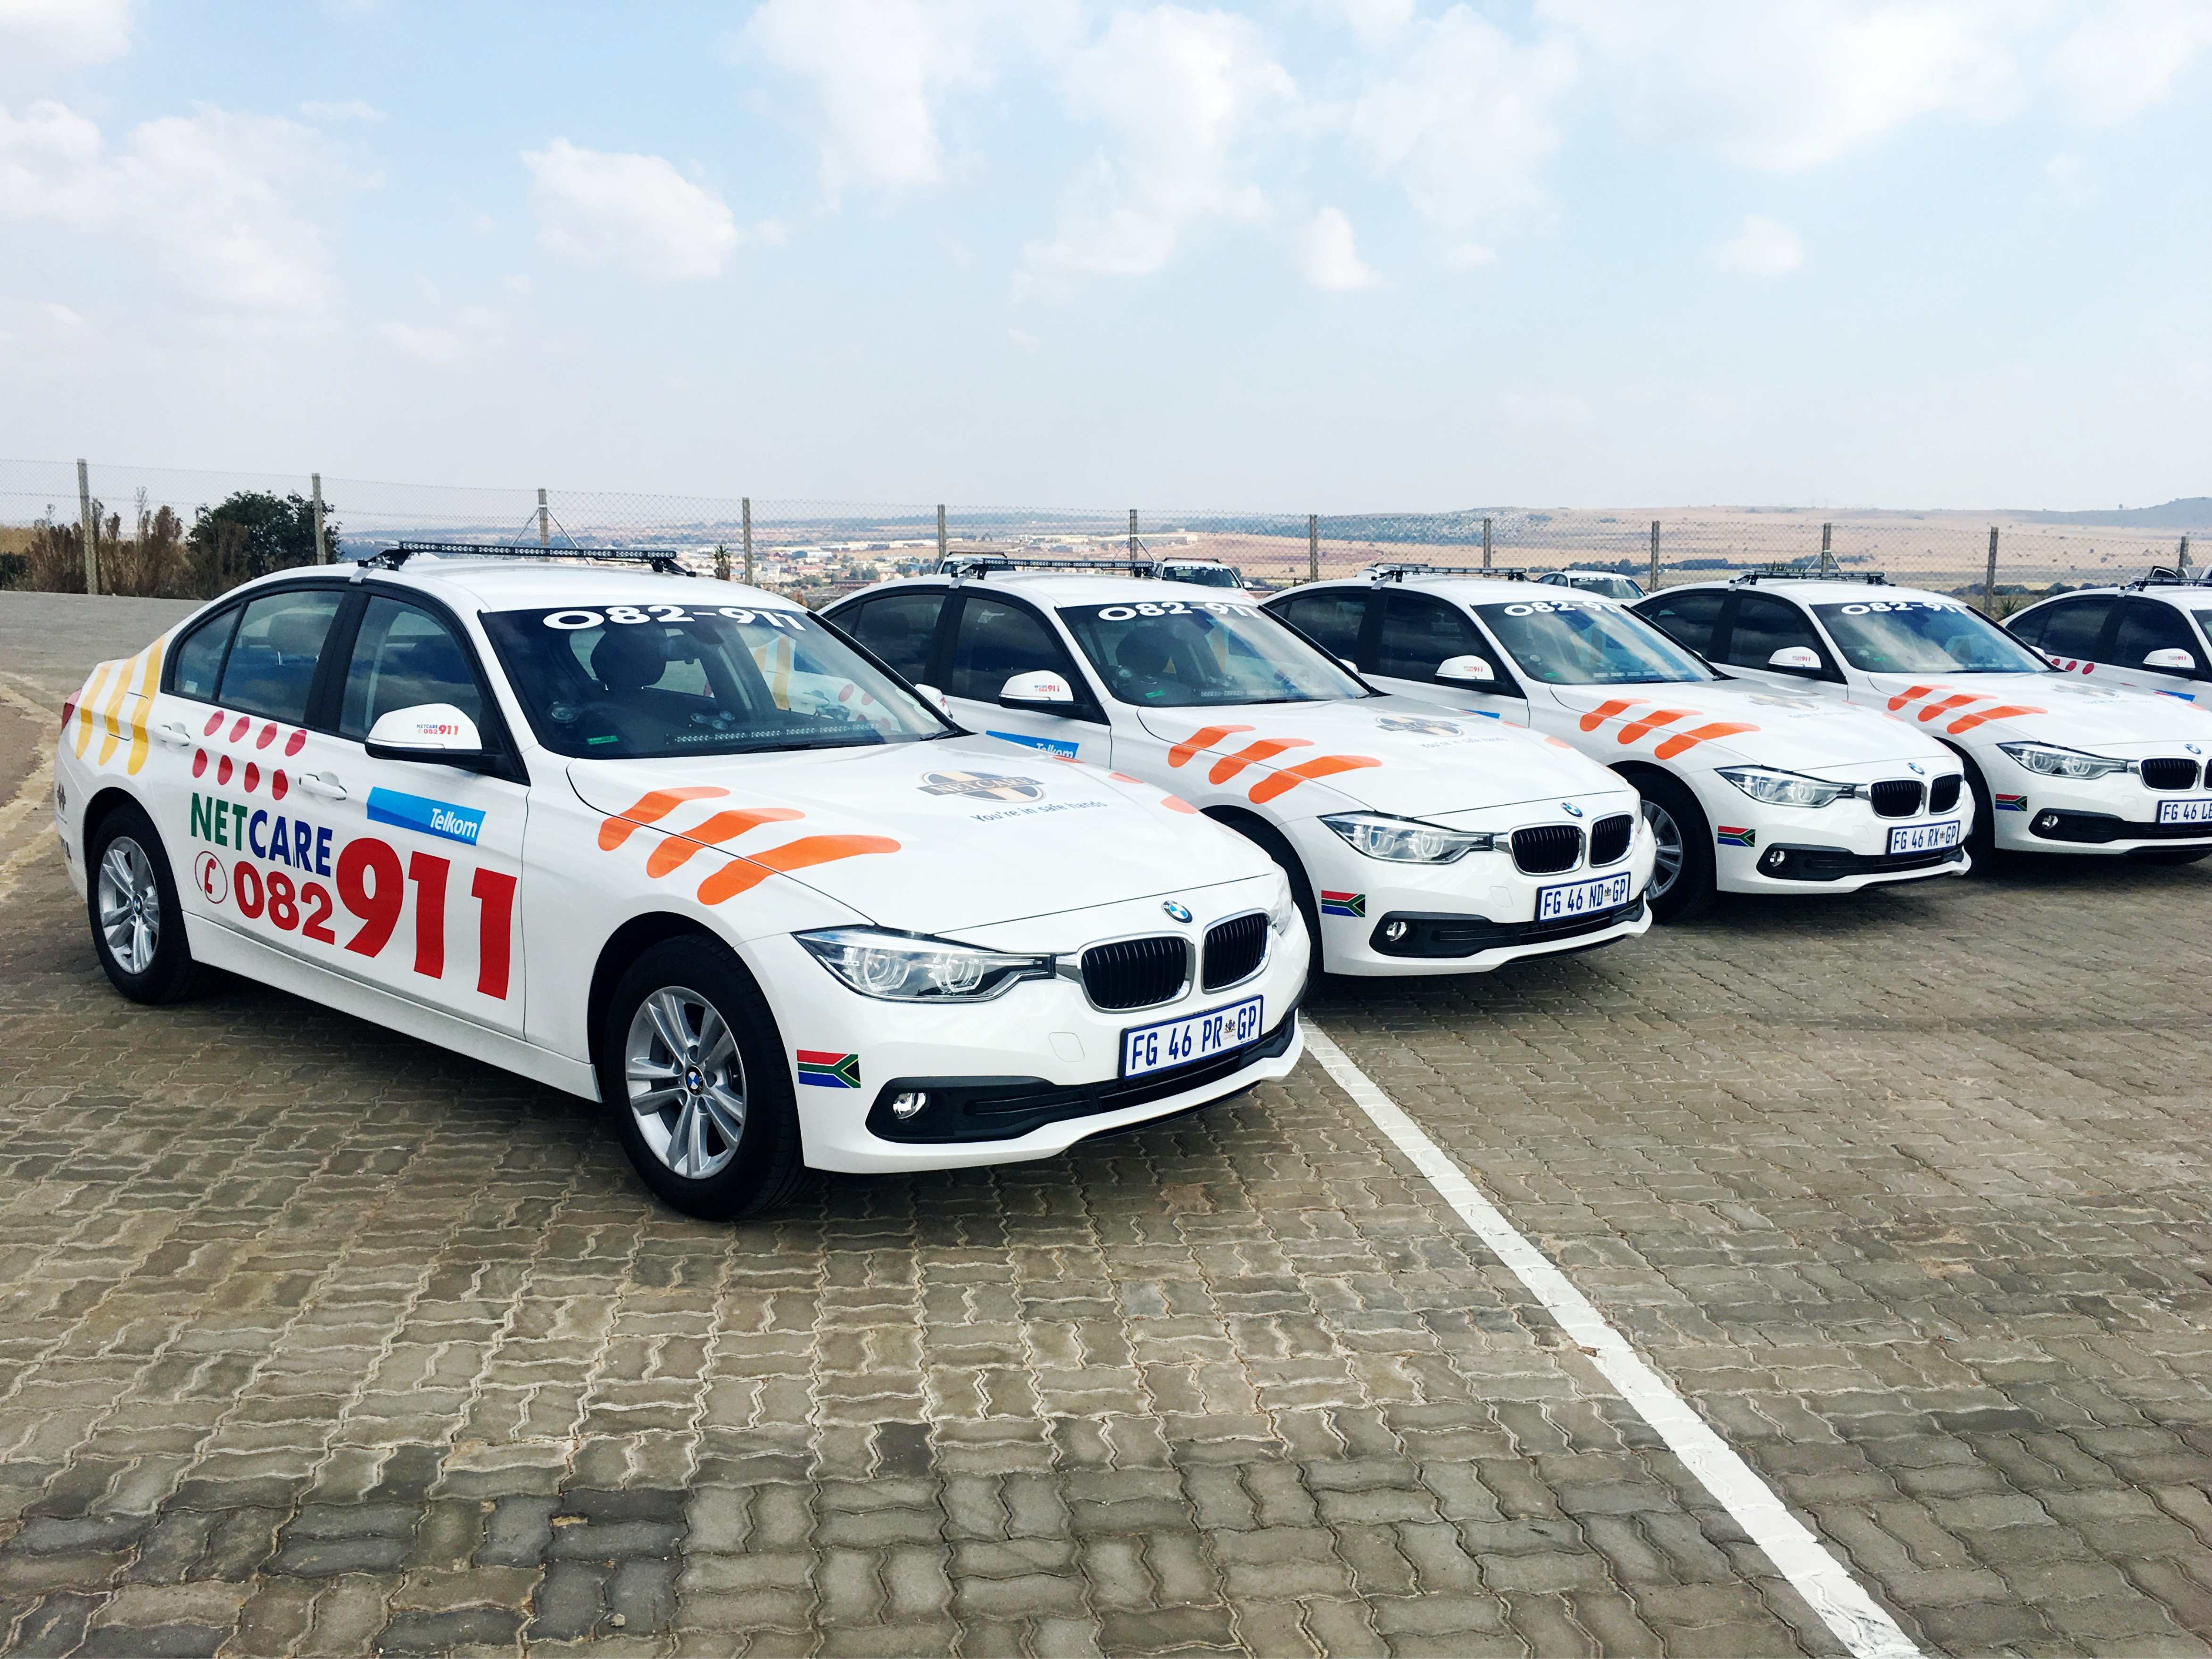 Netcare 911 BMW 3 Series Fleet